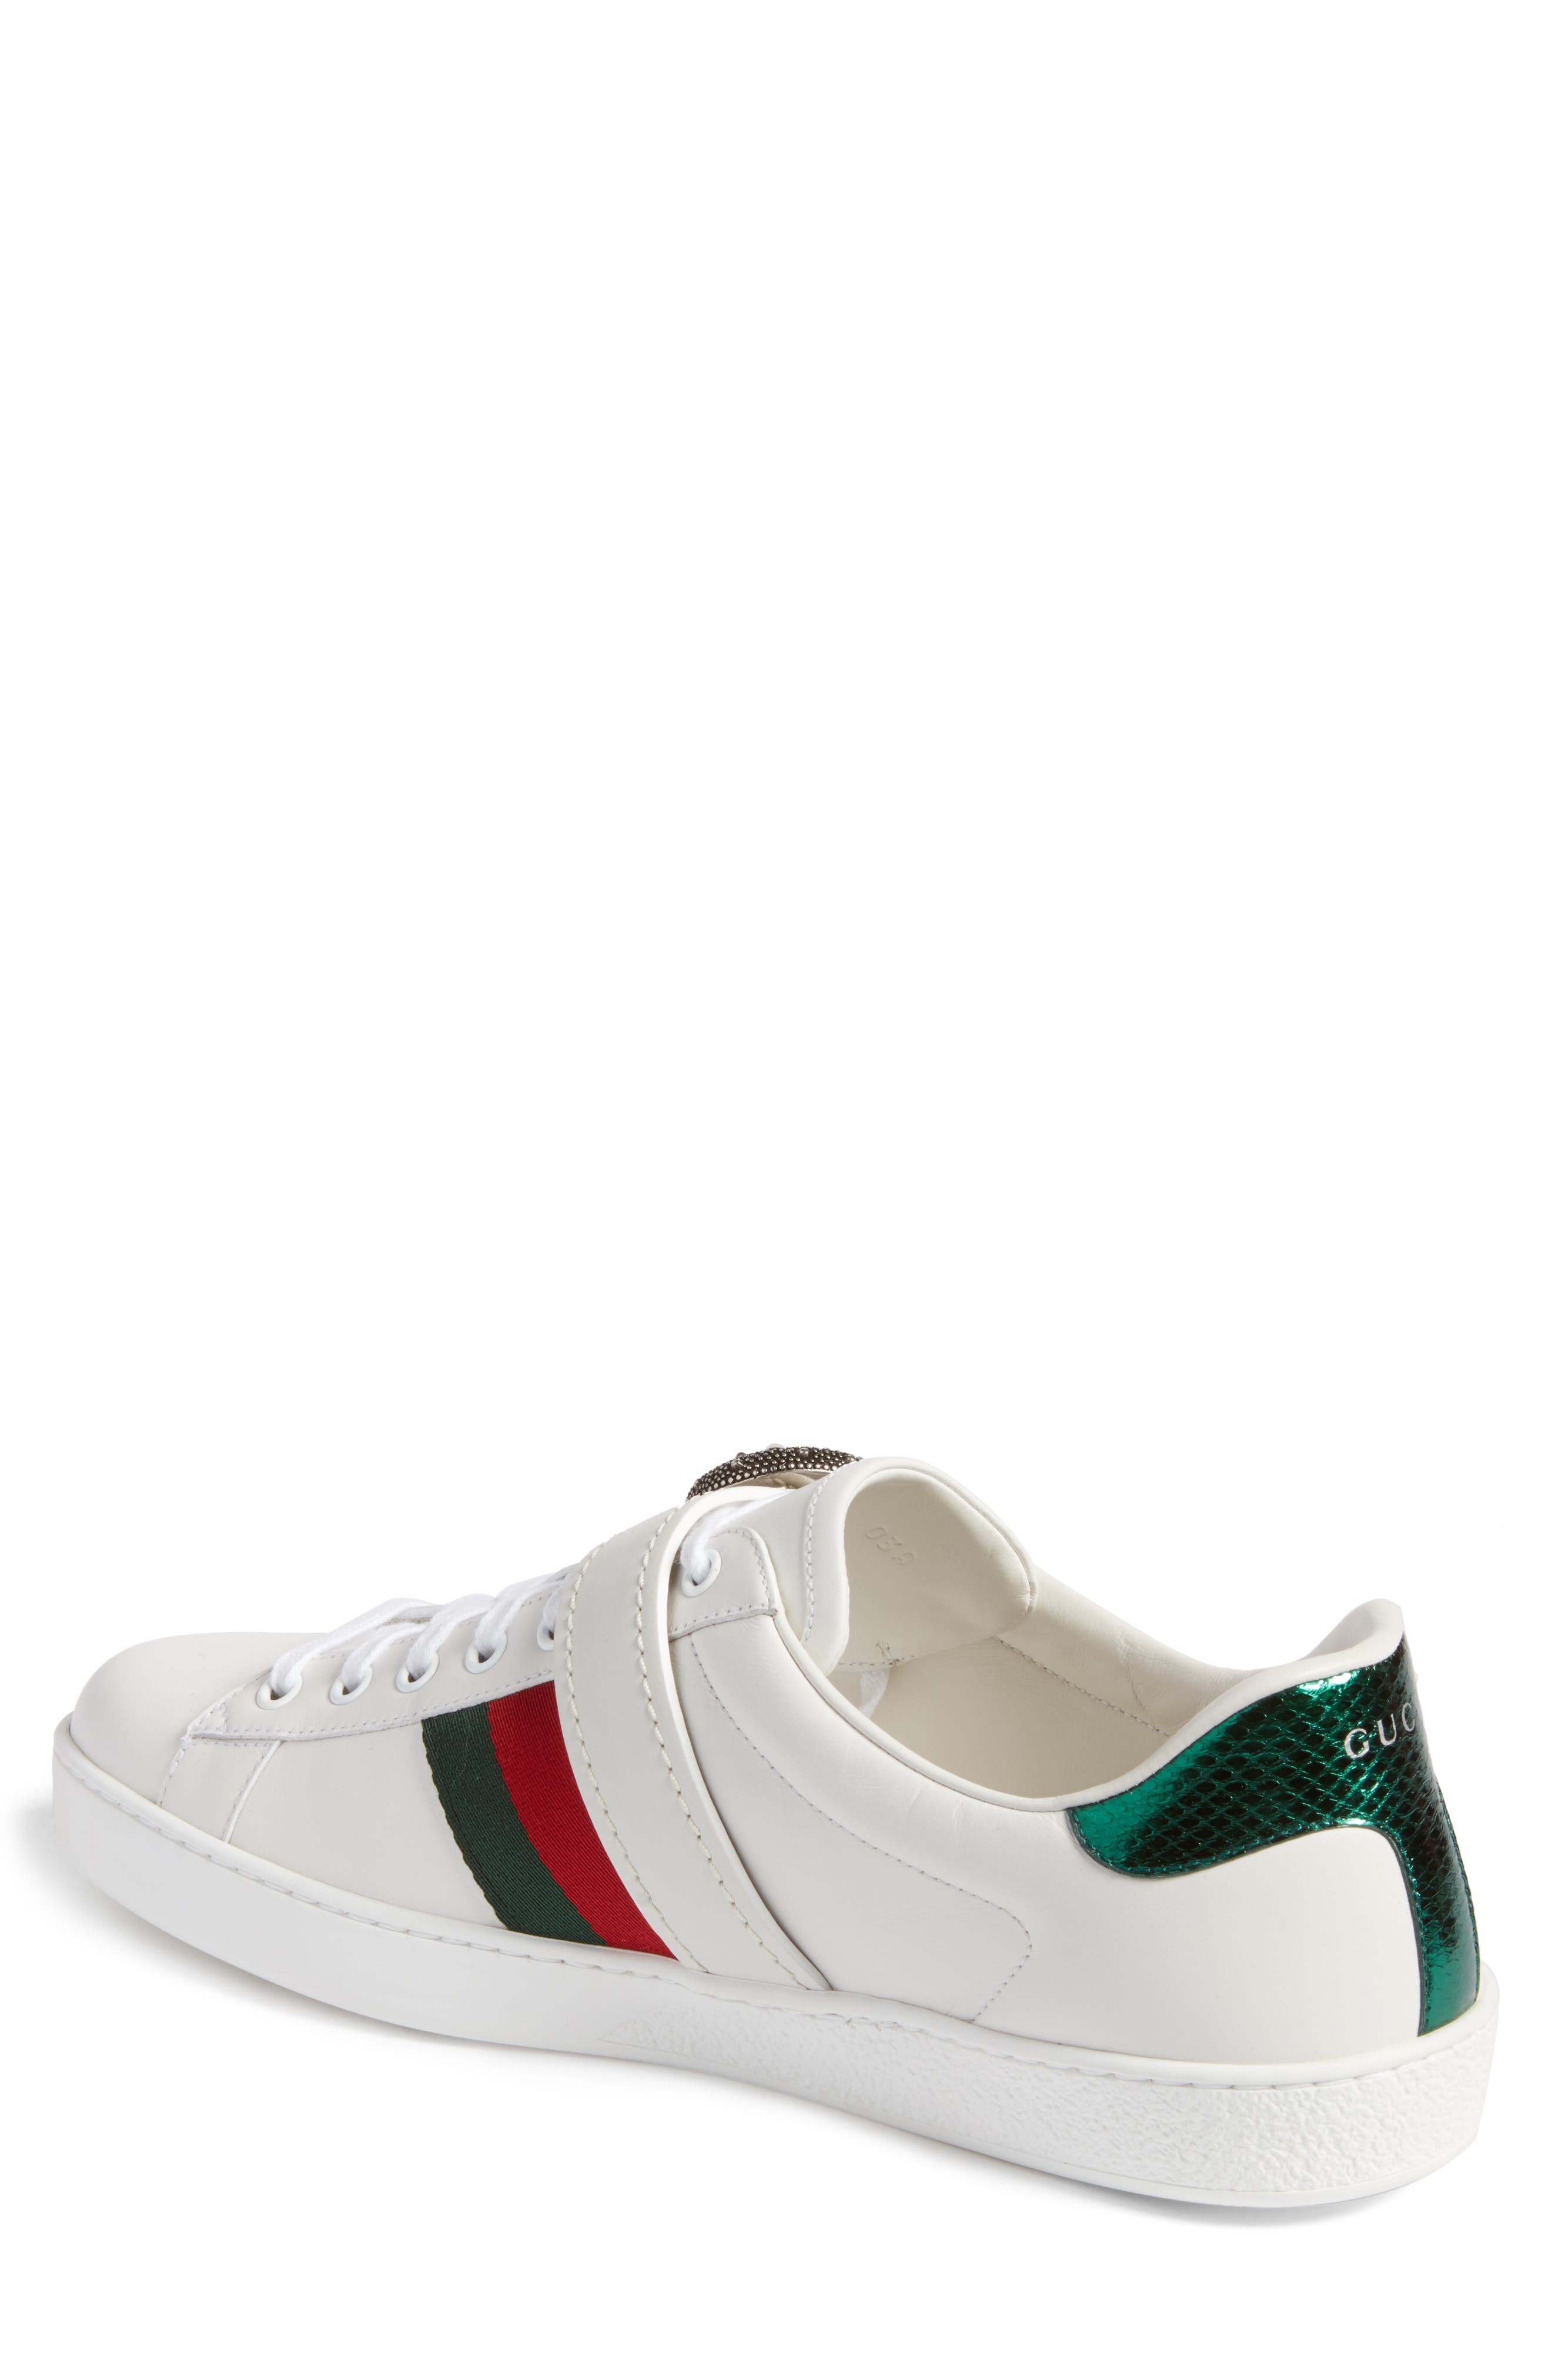 New Ace Dionysus Buckle Low Top Sneaker,                             Alternate thumbnail 2, color,                             White With Silver Hardware